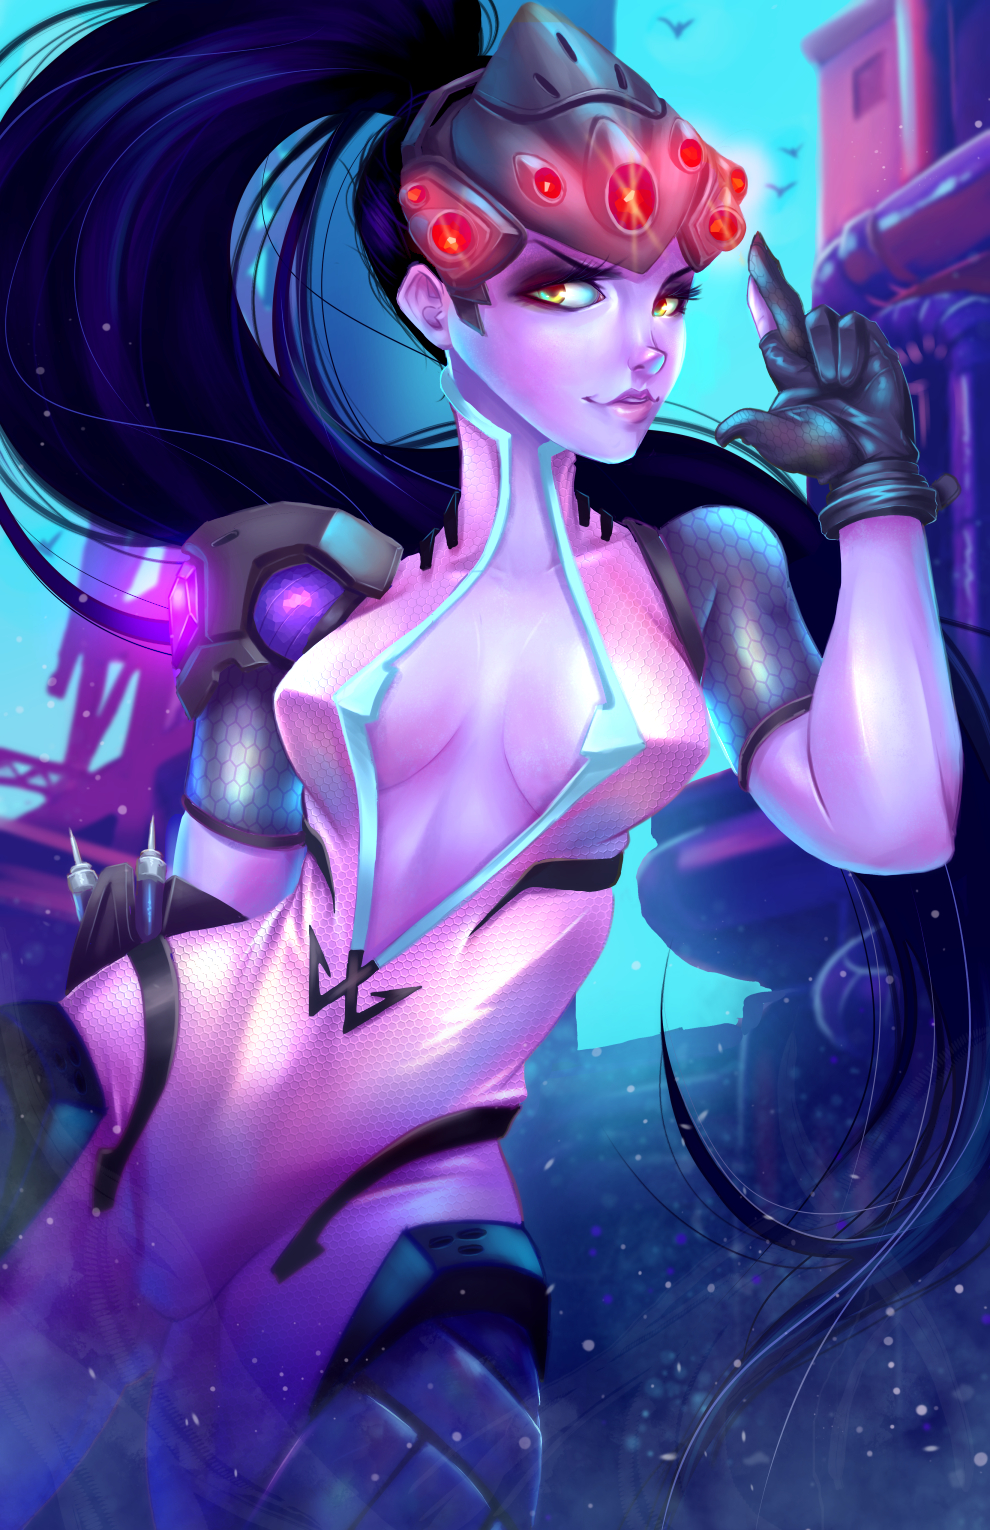 Widowmaker by XxSacrosimxX